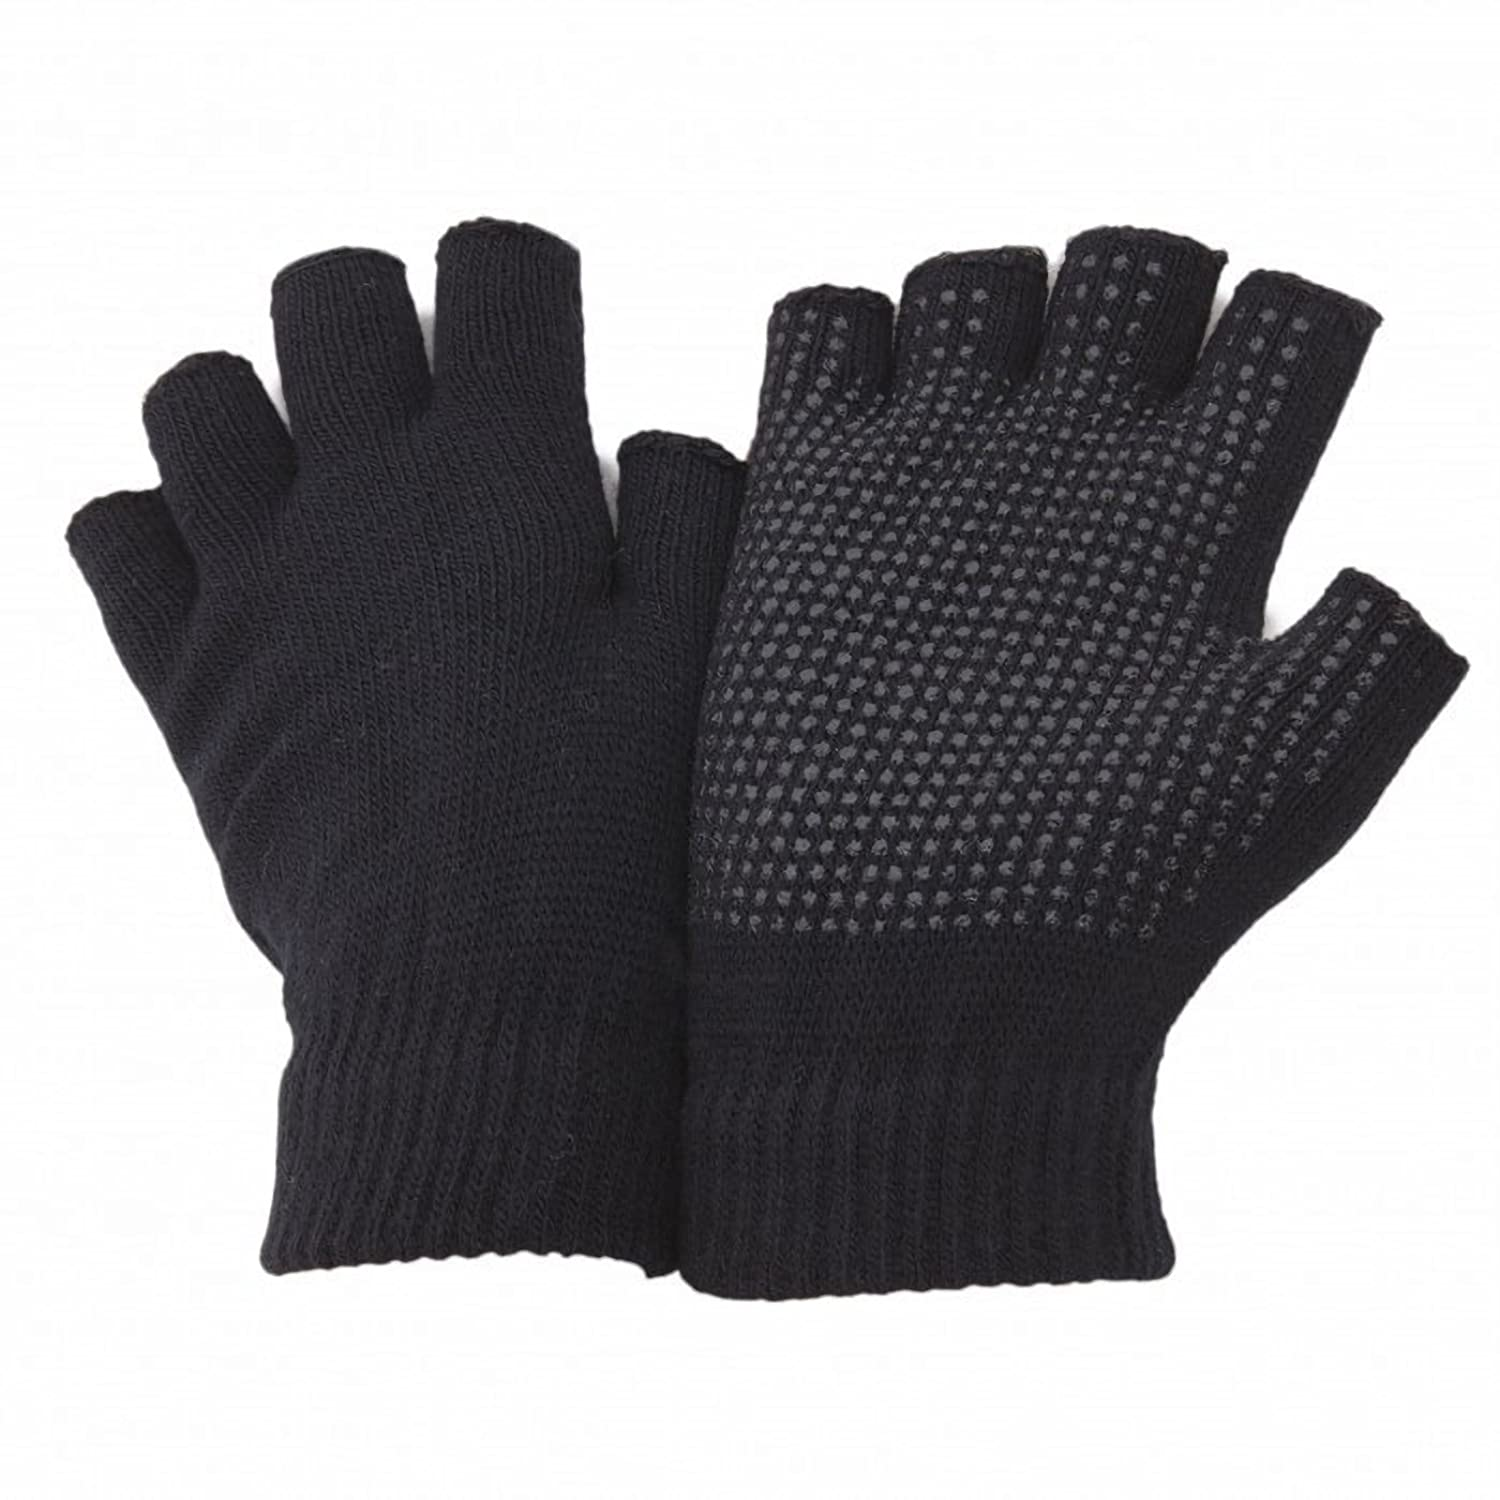 Fingerless gloves for gaming - Floso Unisex Fingerless Magic Gloves With Grip One Size Fits All Black At Amazon Men S Clothing Store Cold Weather Gloves